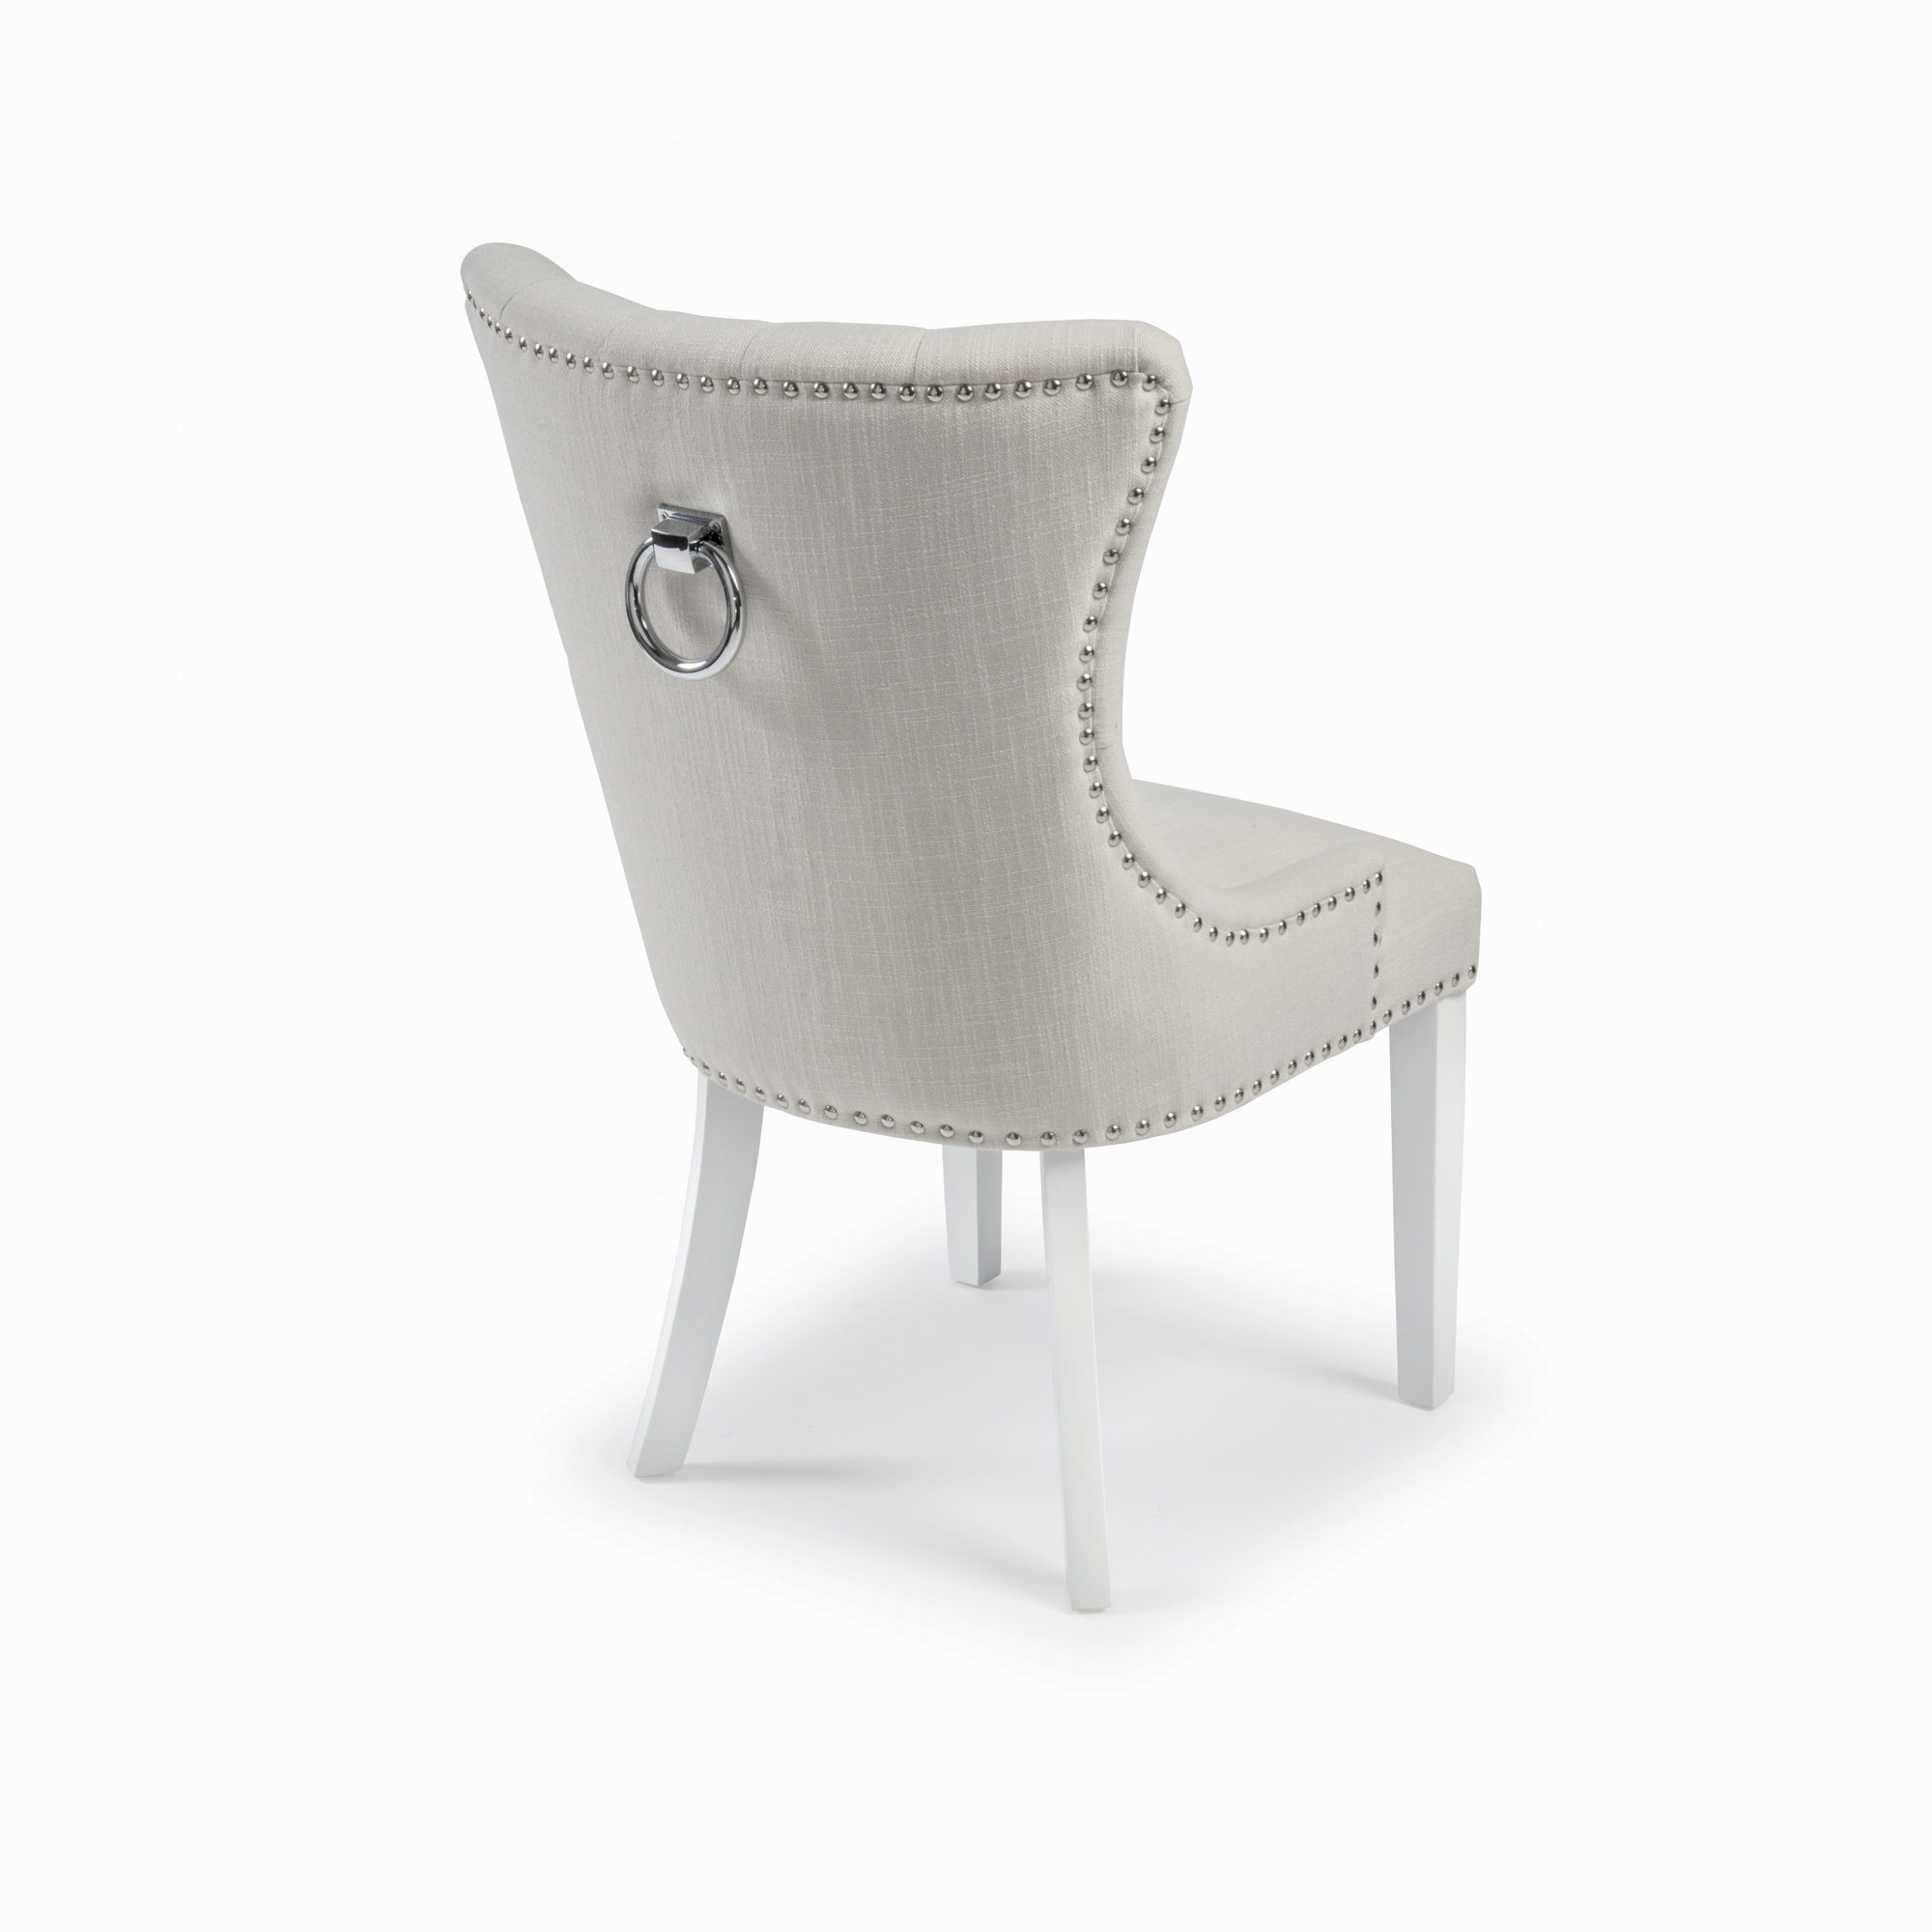 Knightsbridge Natural Linen Dining Chair with Hoop Handle